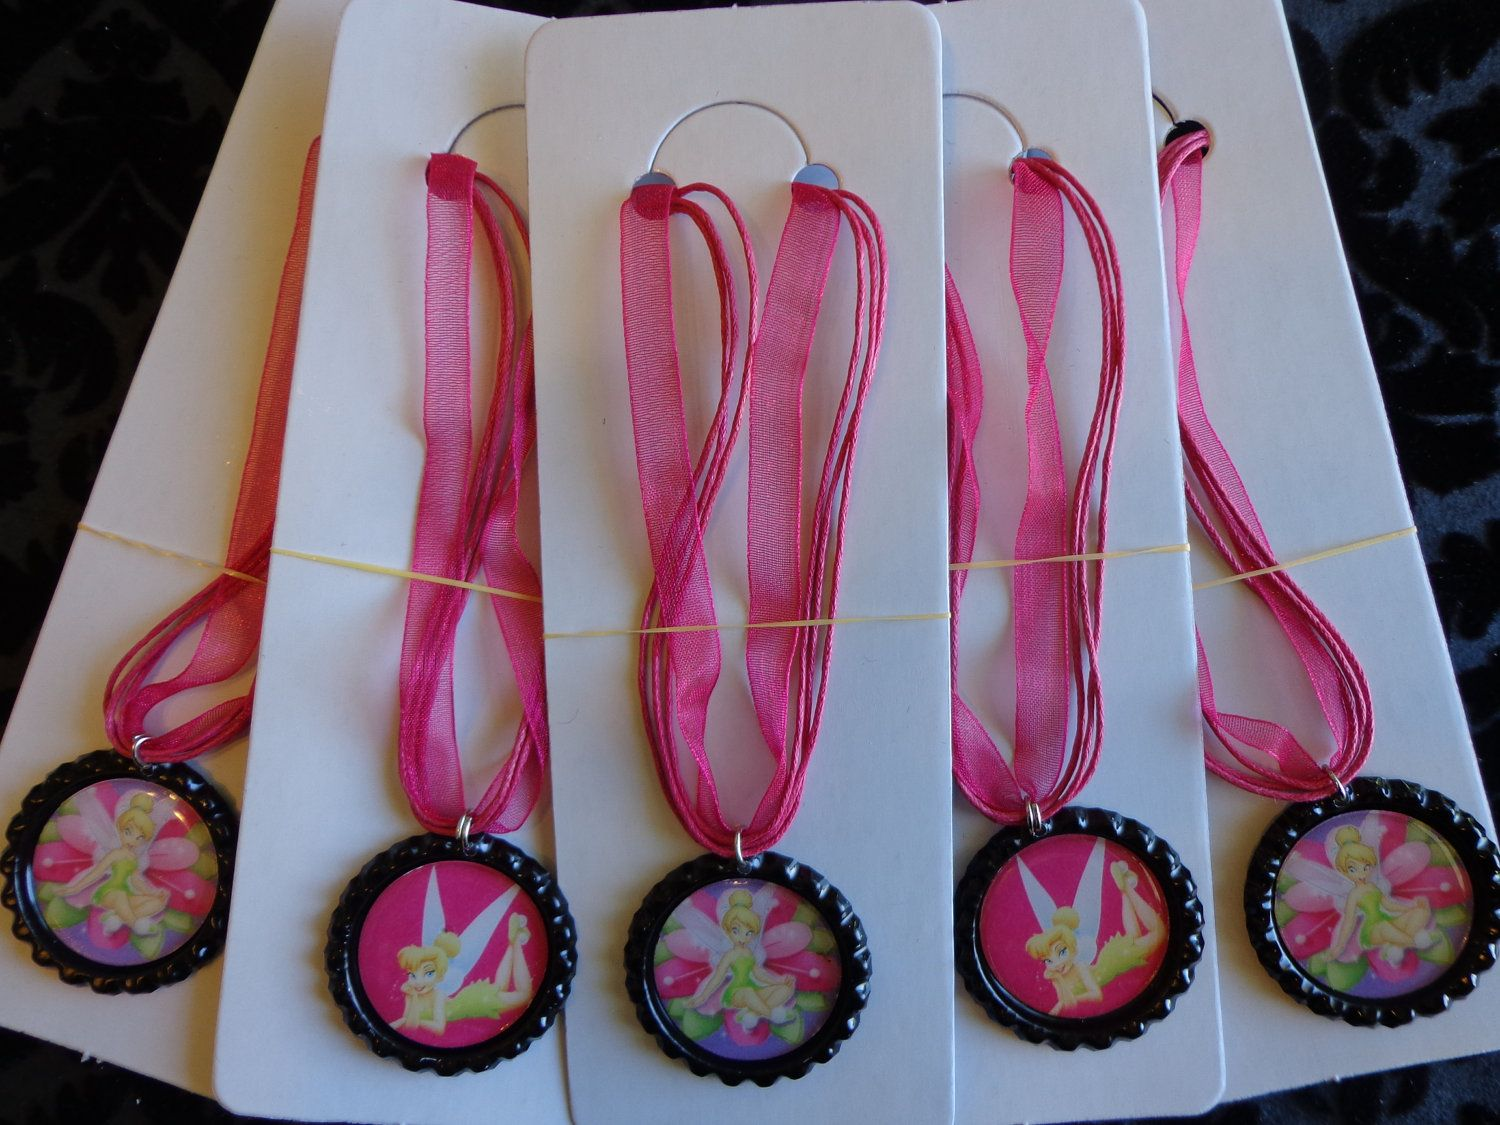 Set of 5 Tinkerbell Party Favor Necklaces. $10.00, via Etsy.